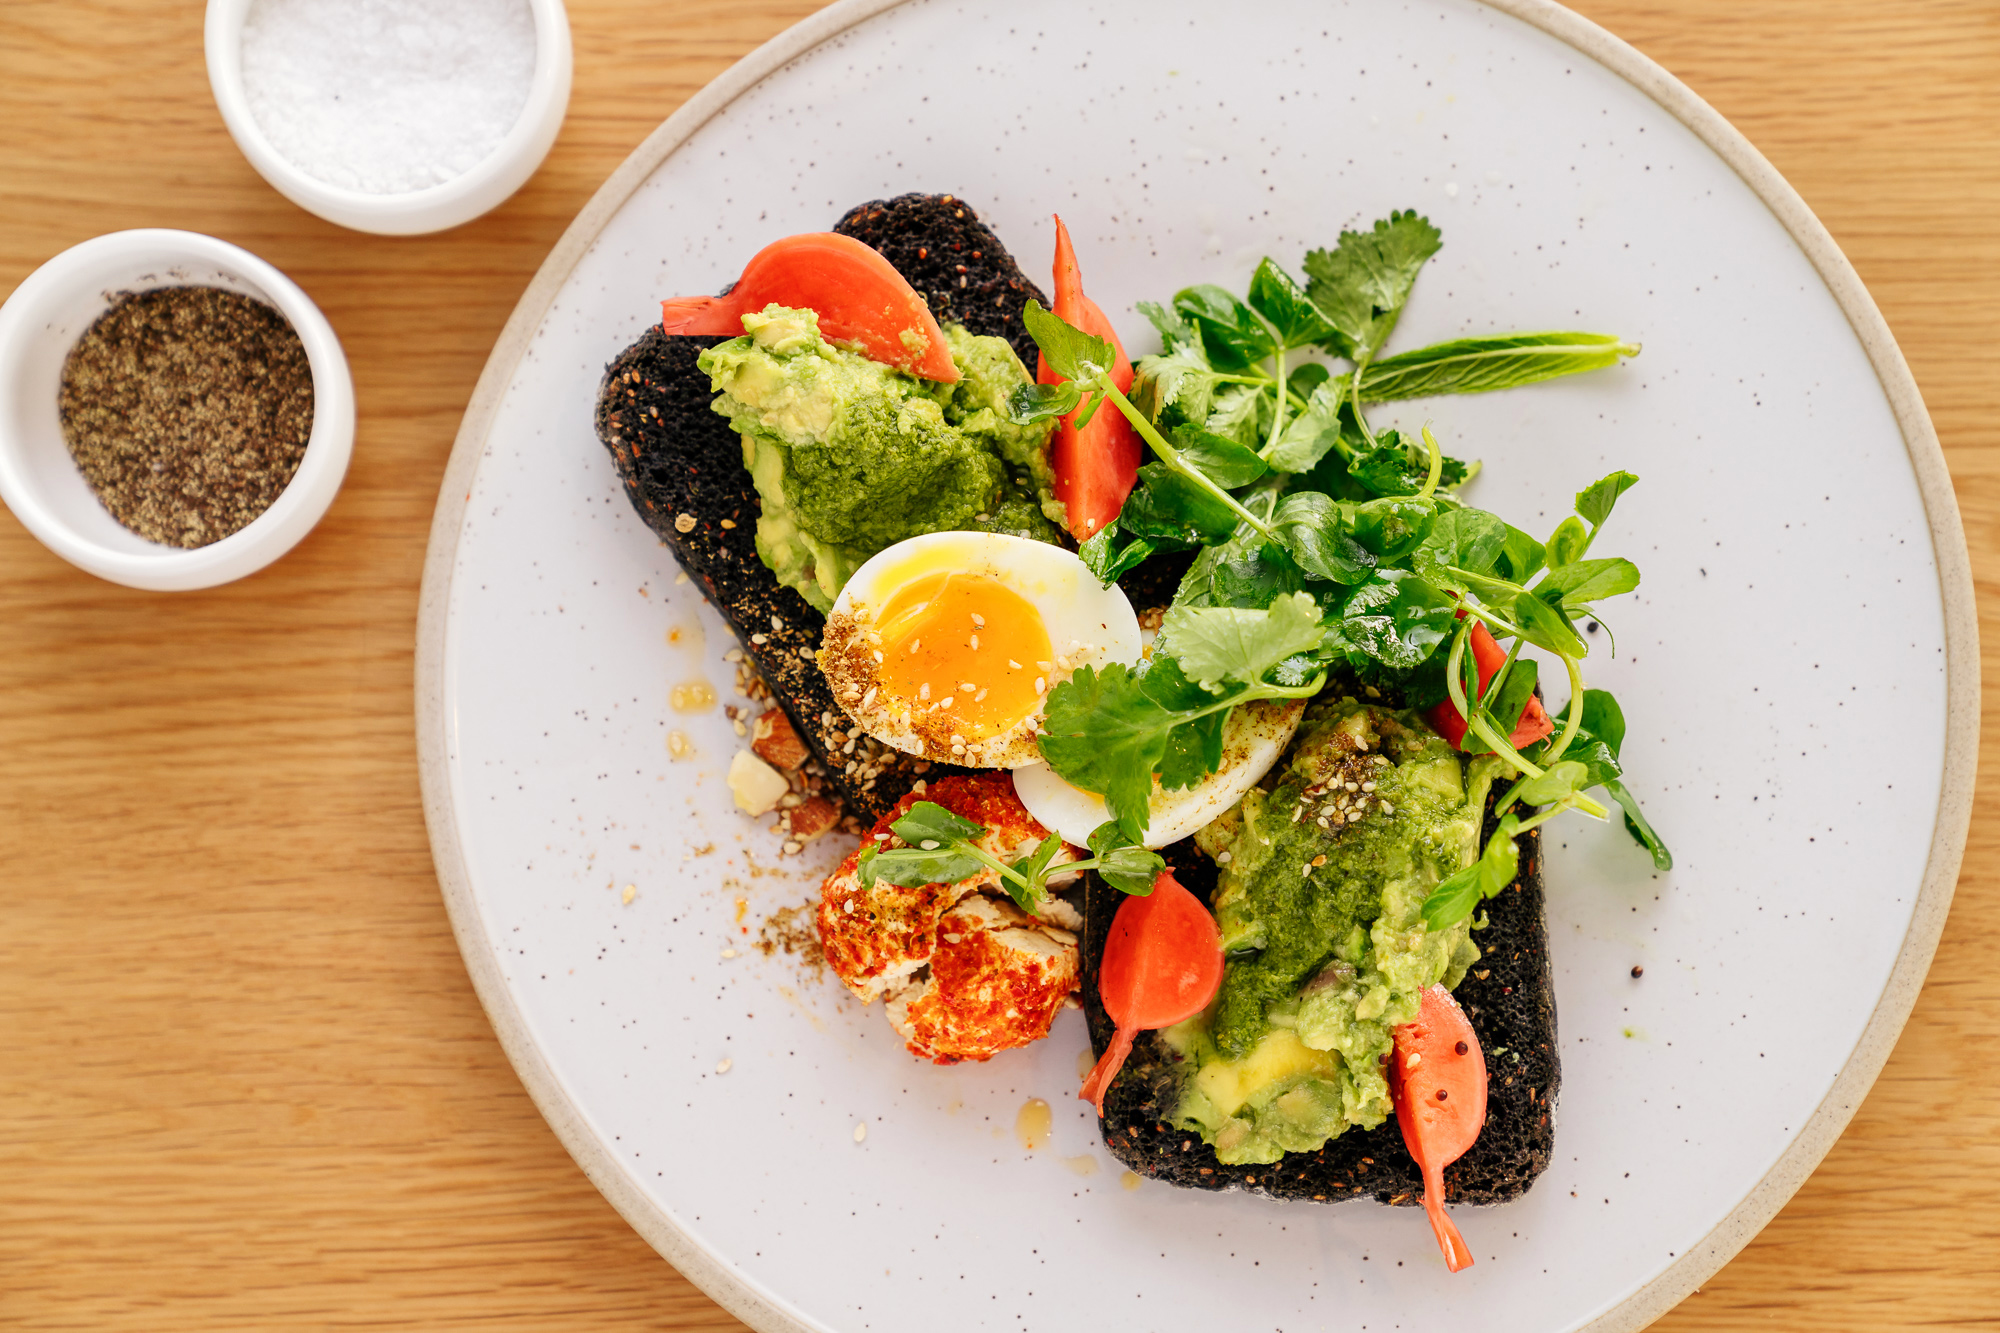 Avocado and soft boiled eggs on toast, surrouded with garnishes